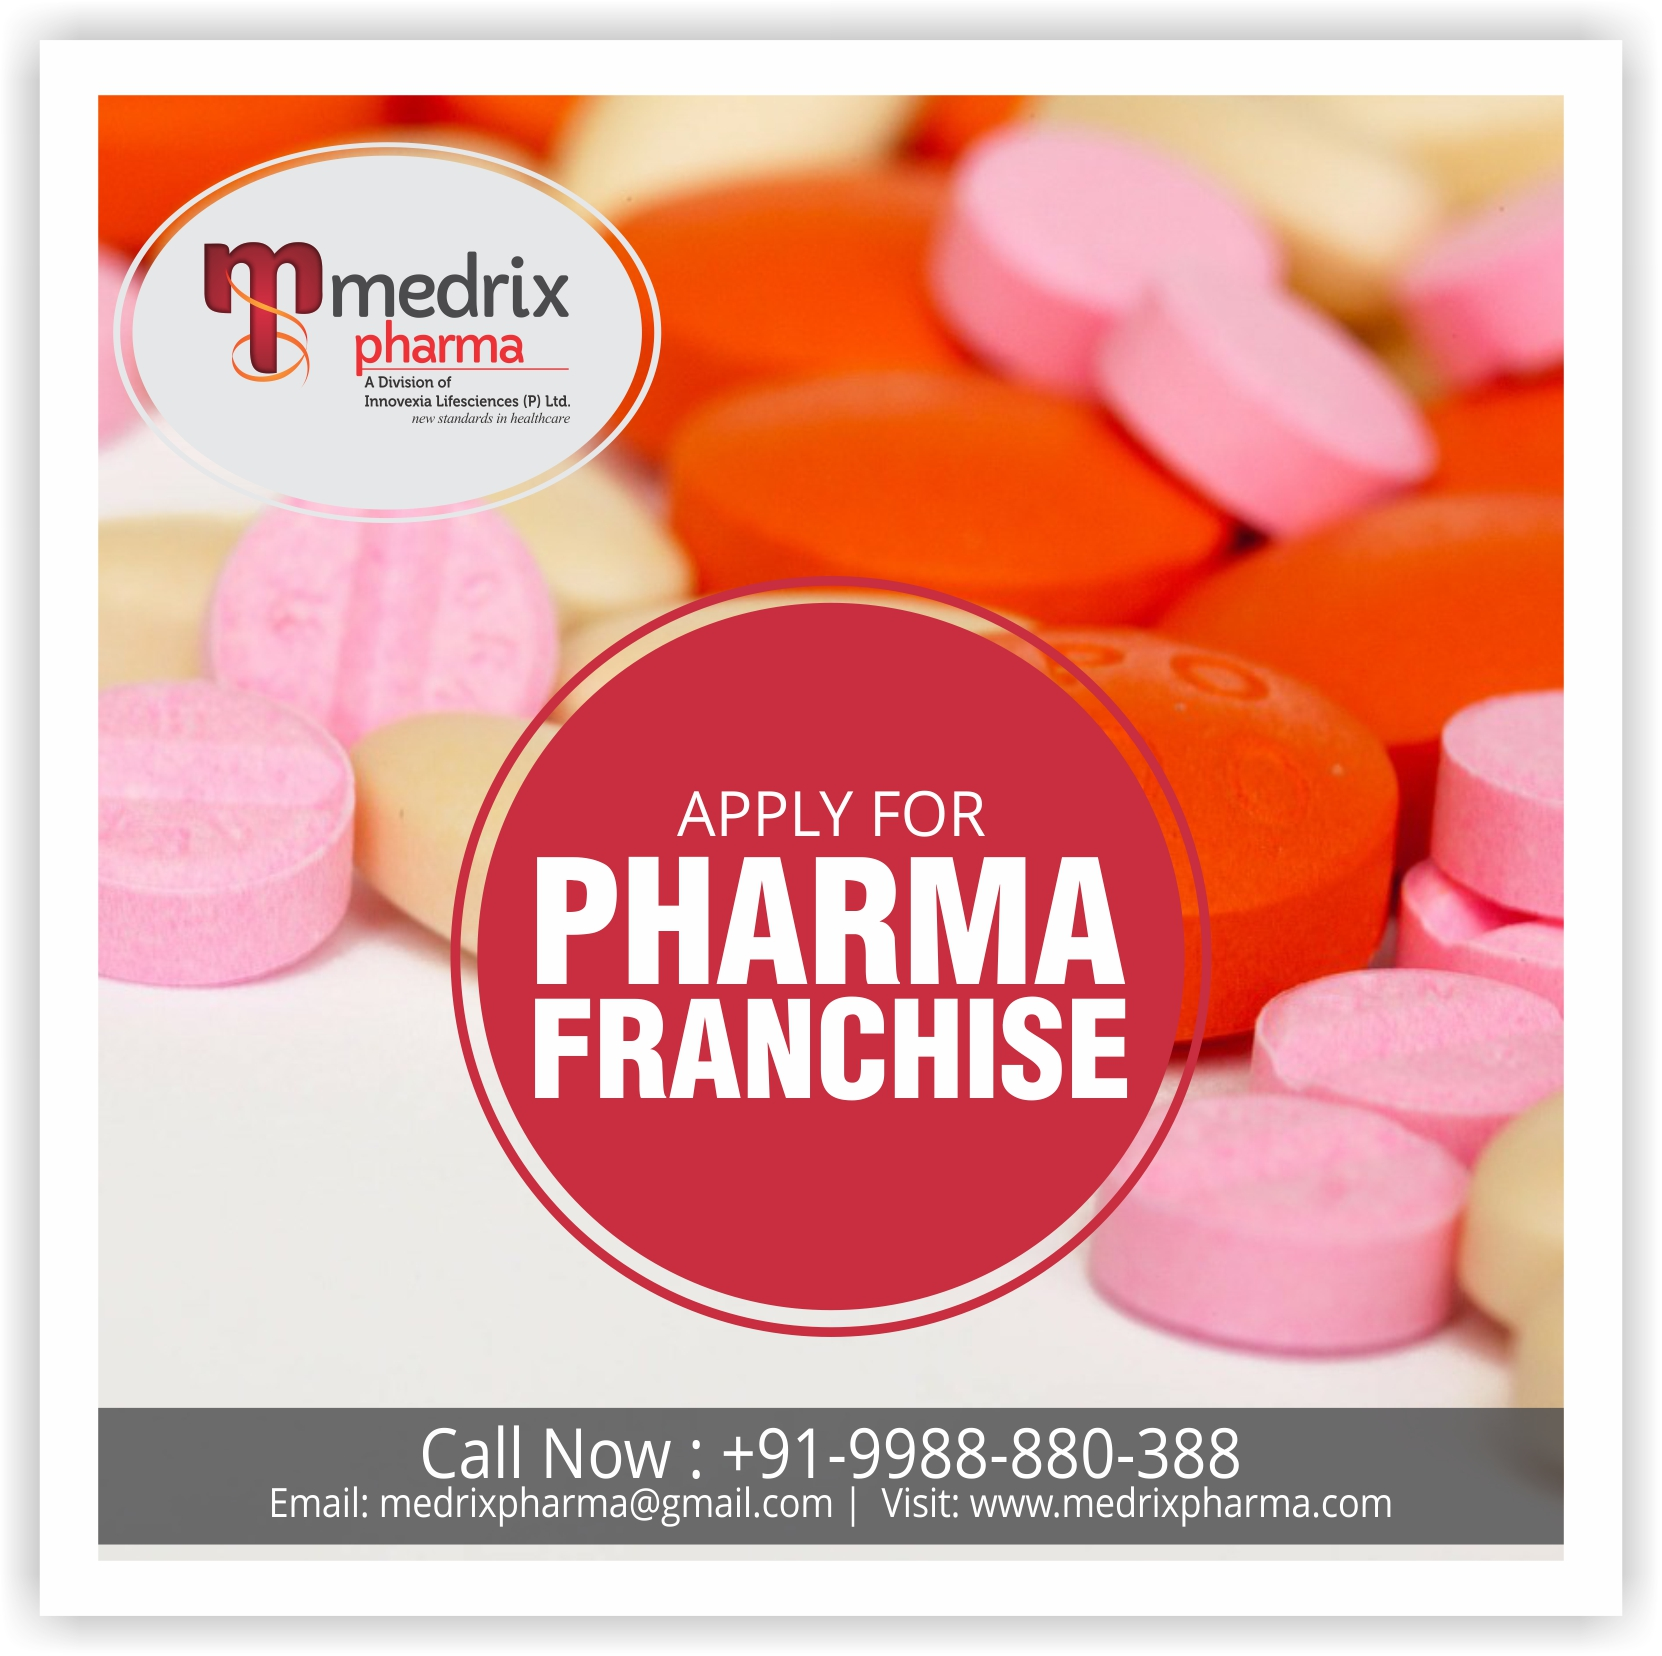 PCD Pharma Franchise in Puducherry